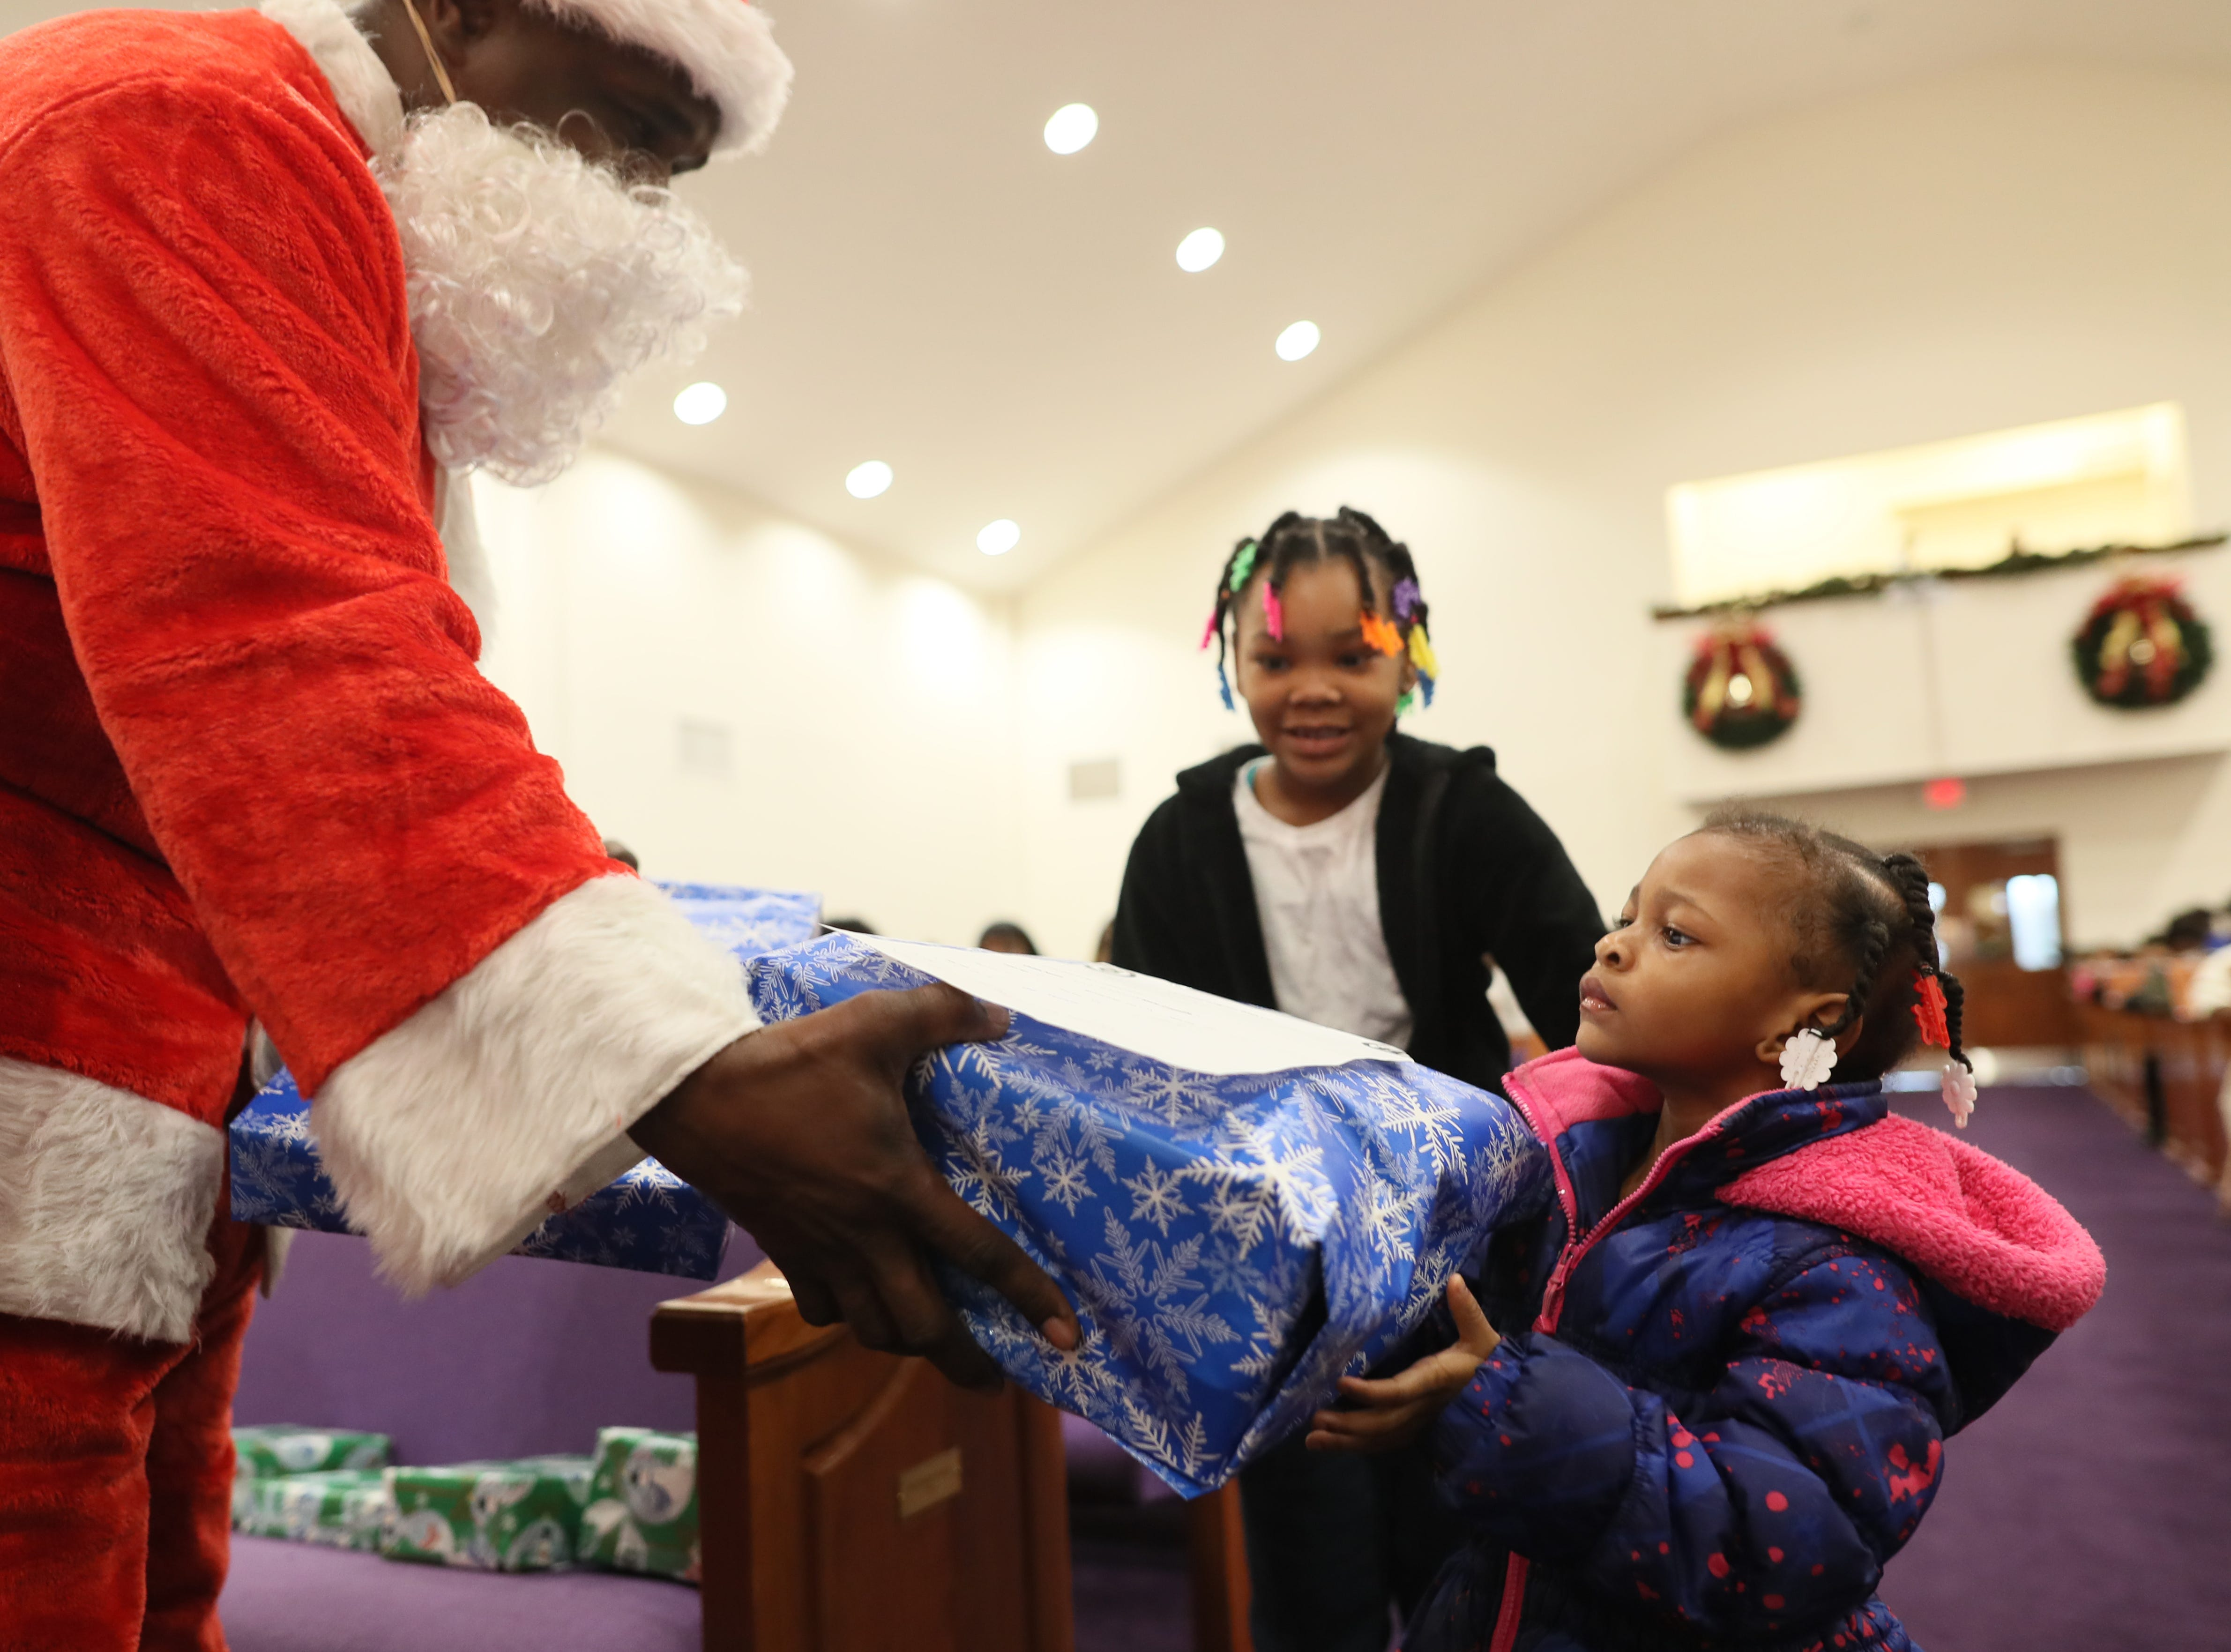 Officer Keith Payne hands out gifts dressed as Santa as the MPD's Community Outreach Program brings Christmas cheer to dozens of families at Grace Missionary Baptist Church on Thursday, Dec. 20, 2018.